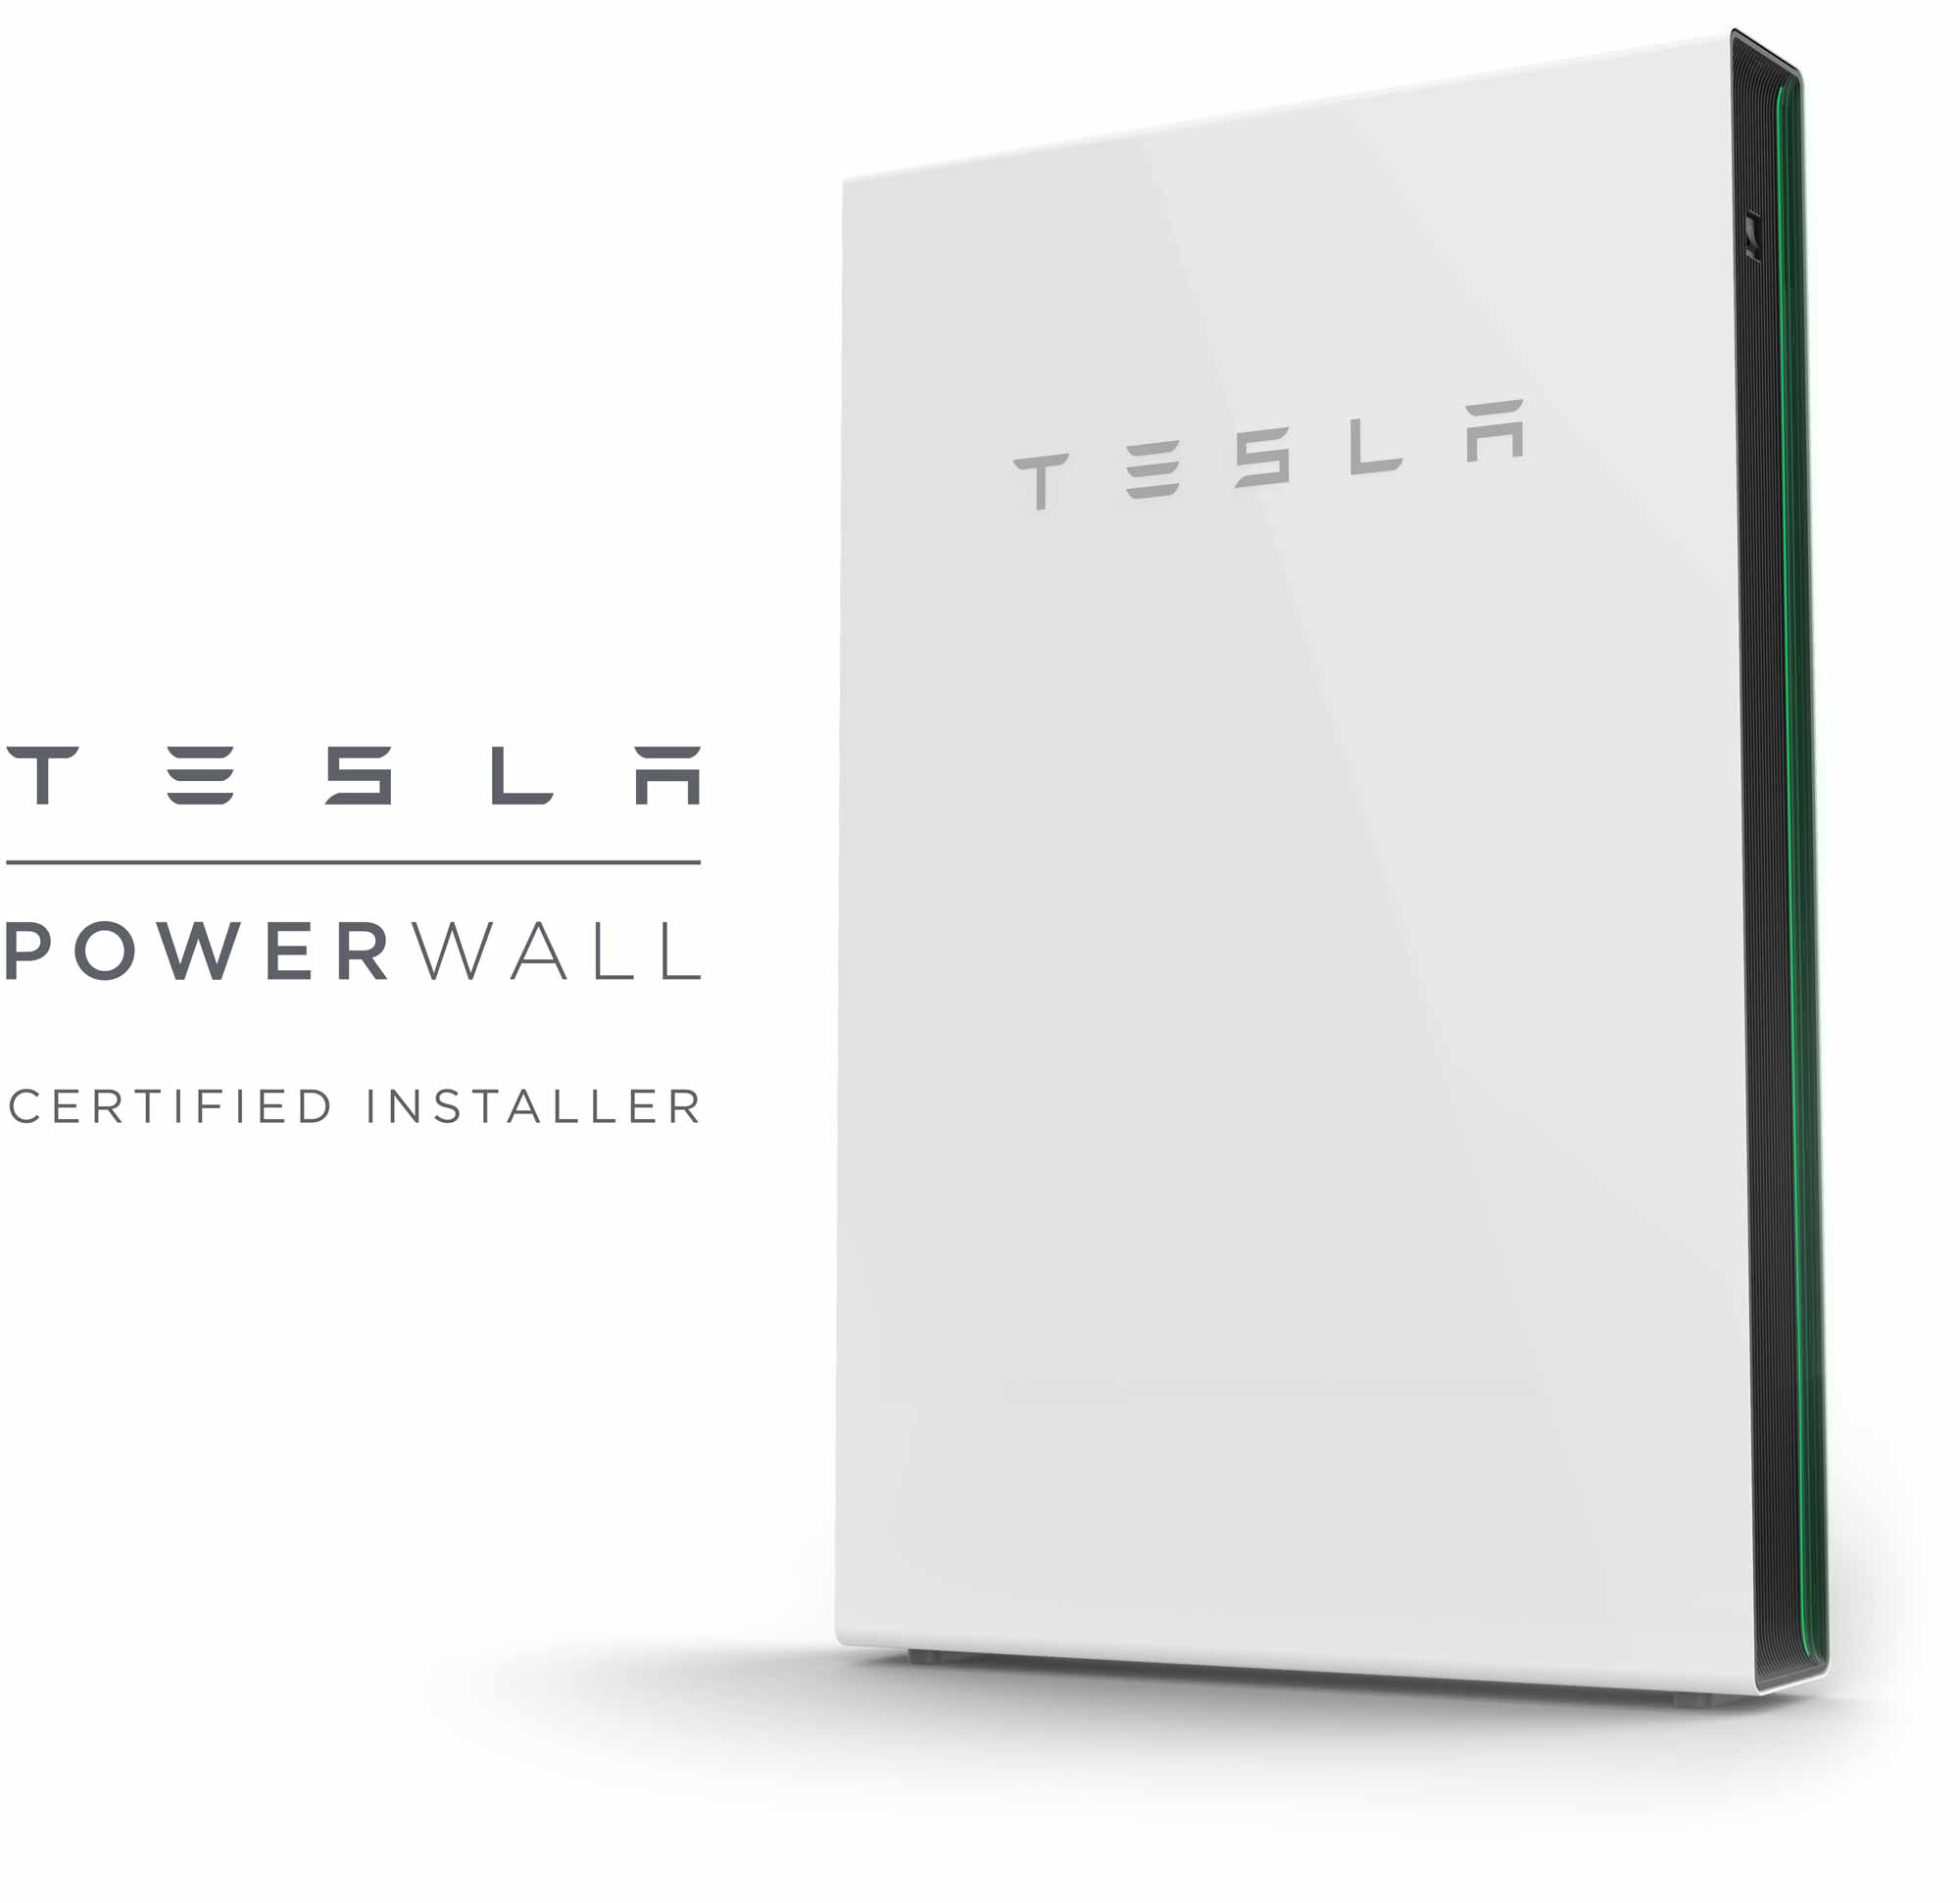 Smart Charge America is a certified installer of the Tesla powerwall home battery